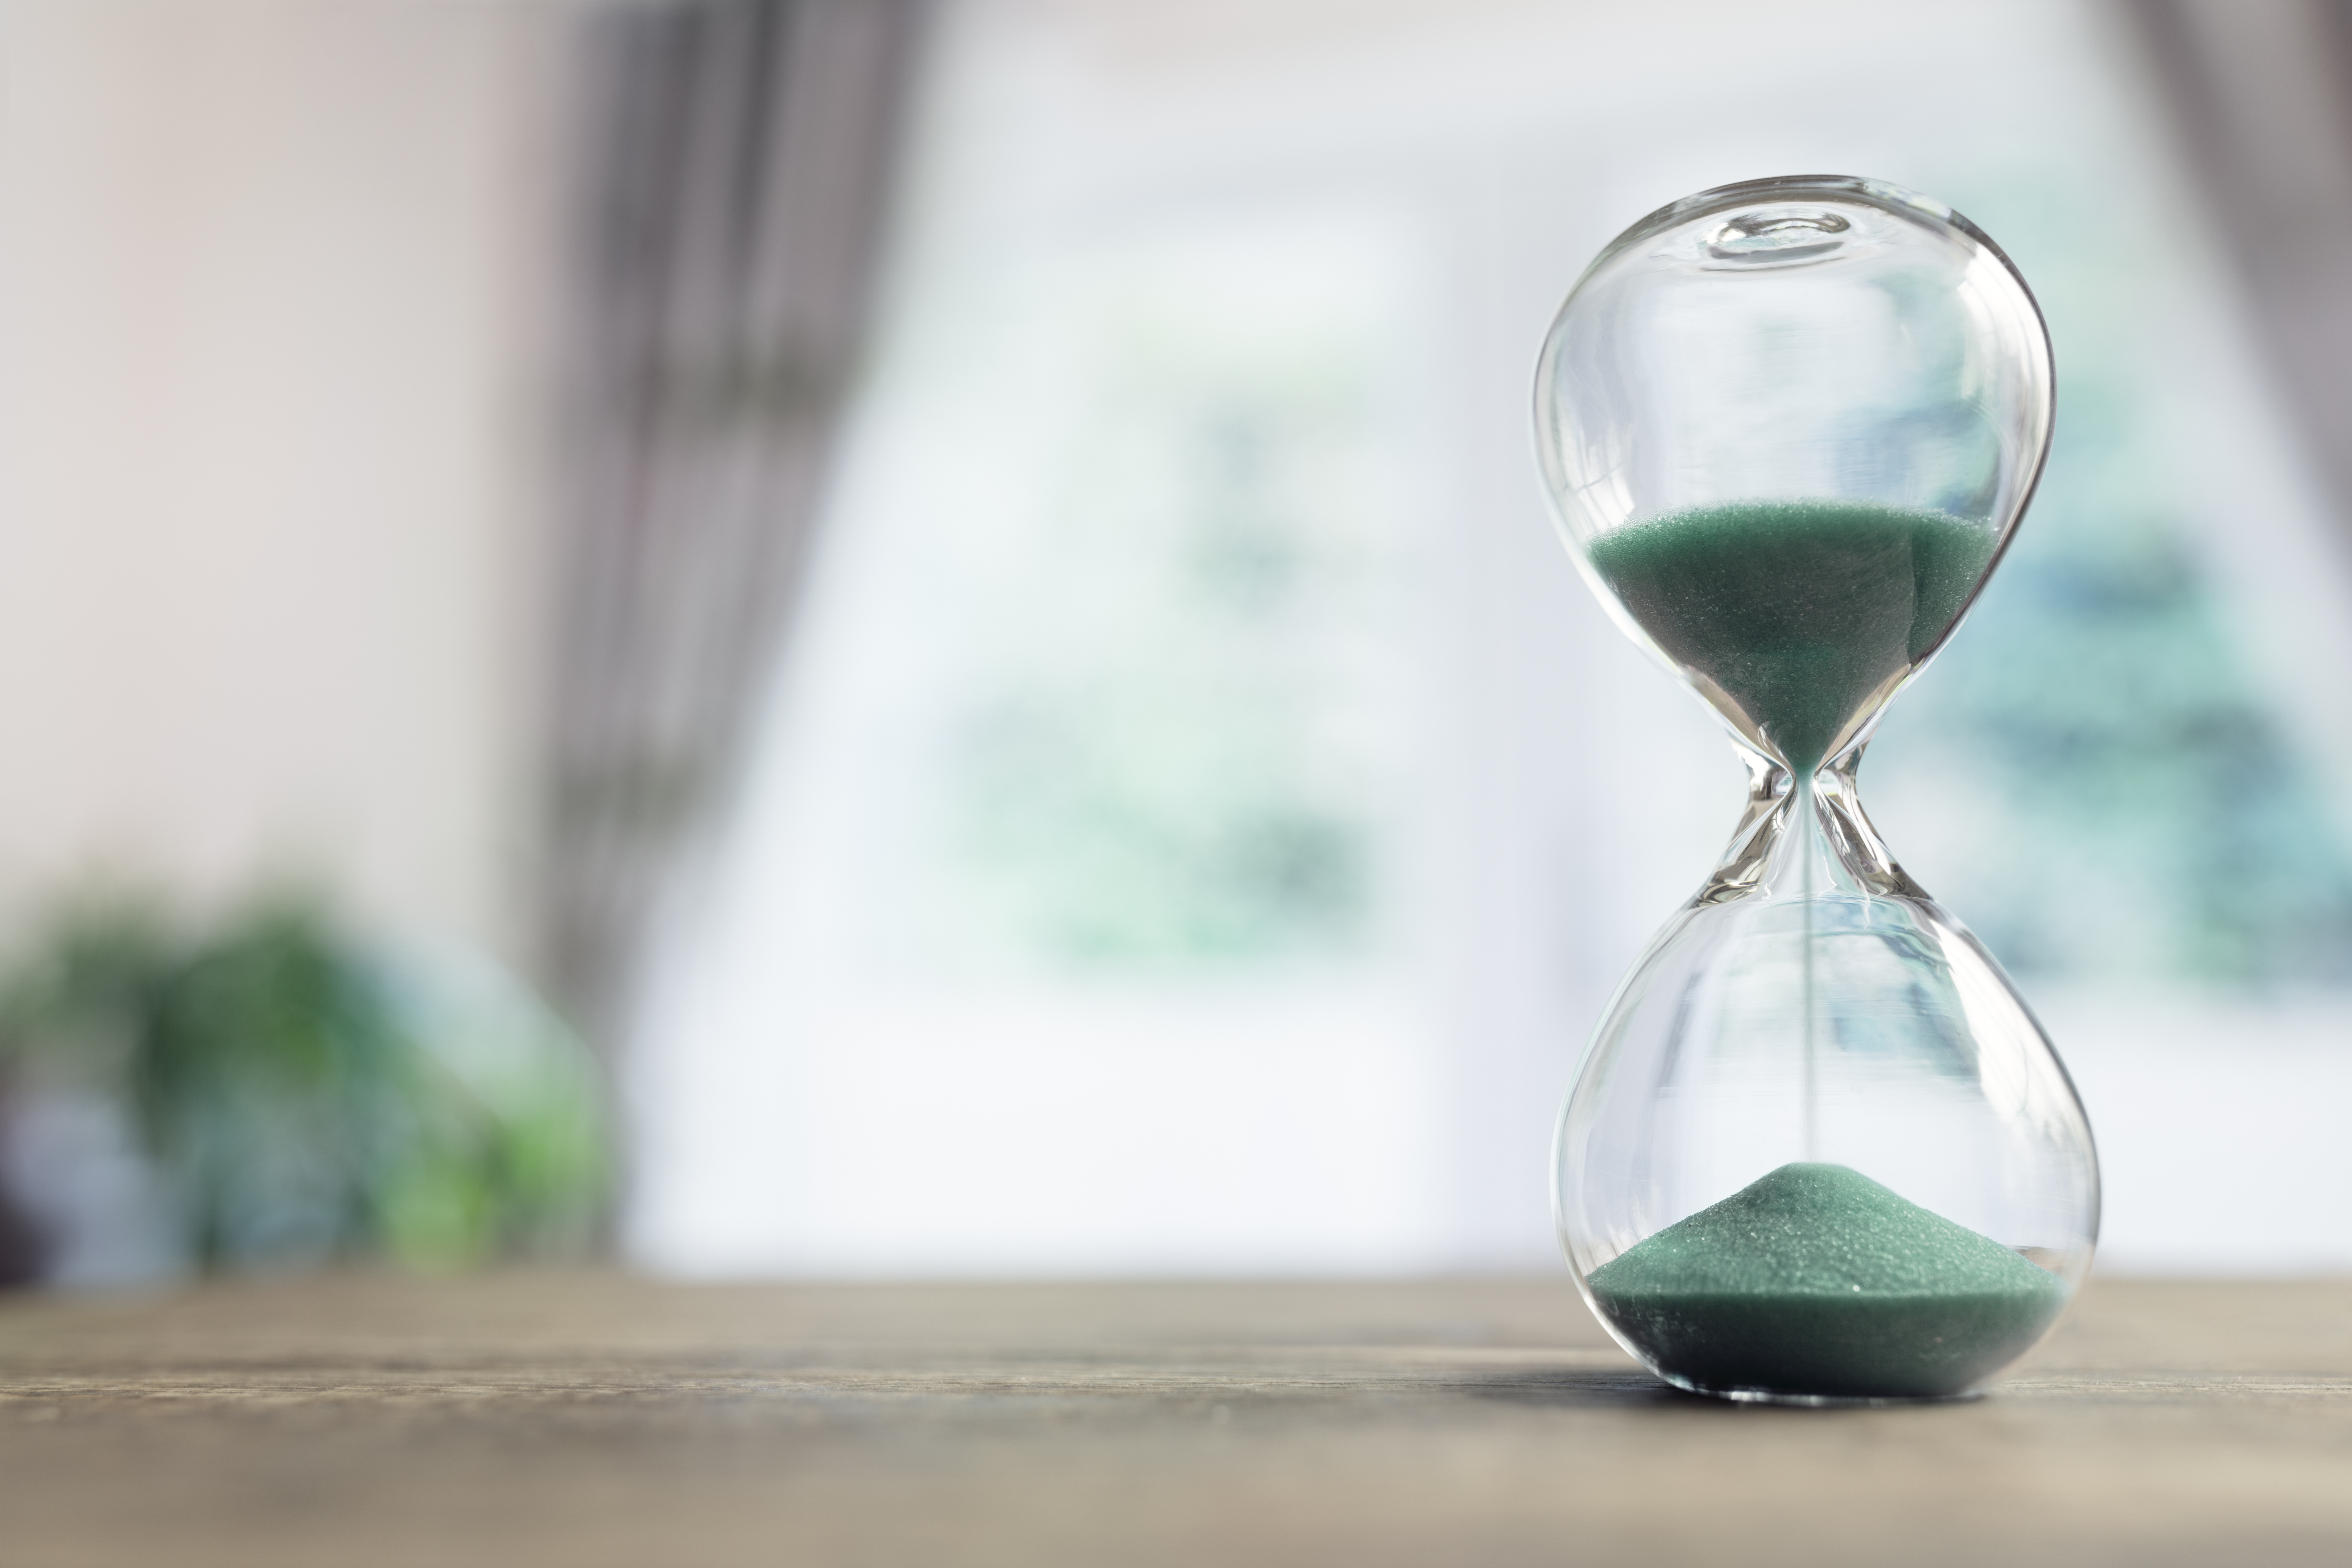 Hourglass time passing on table in room by window